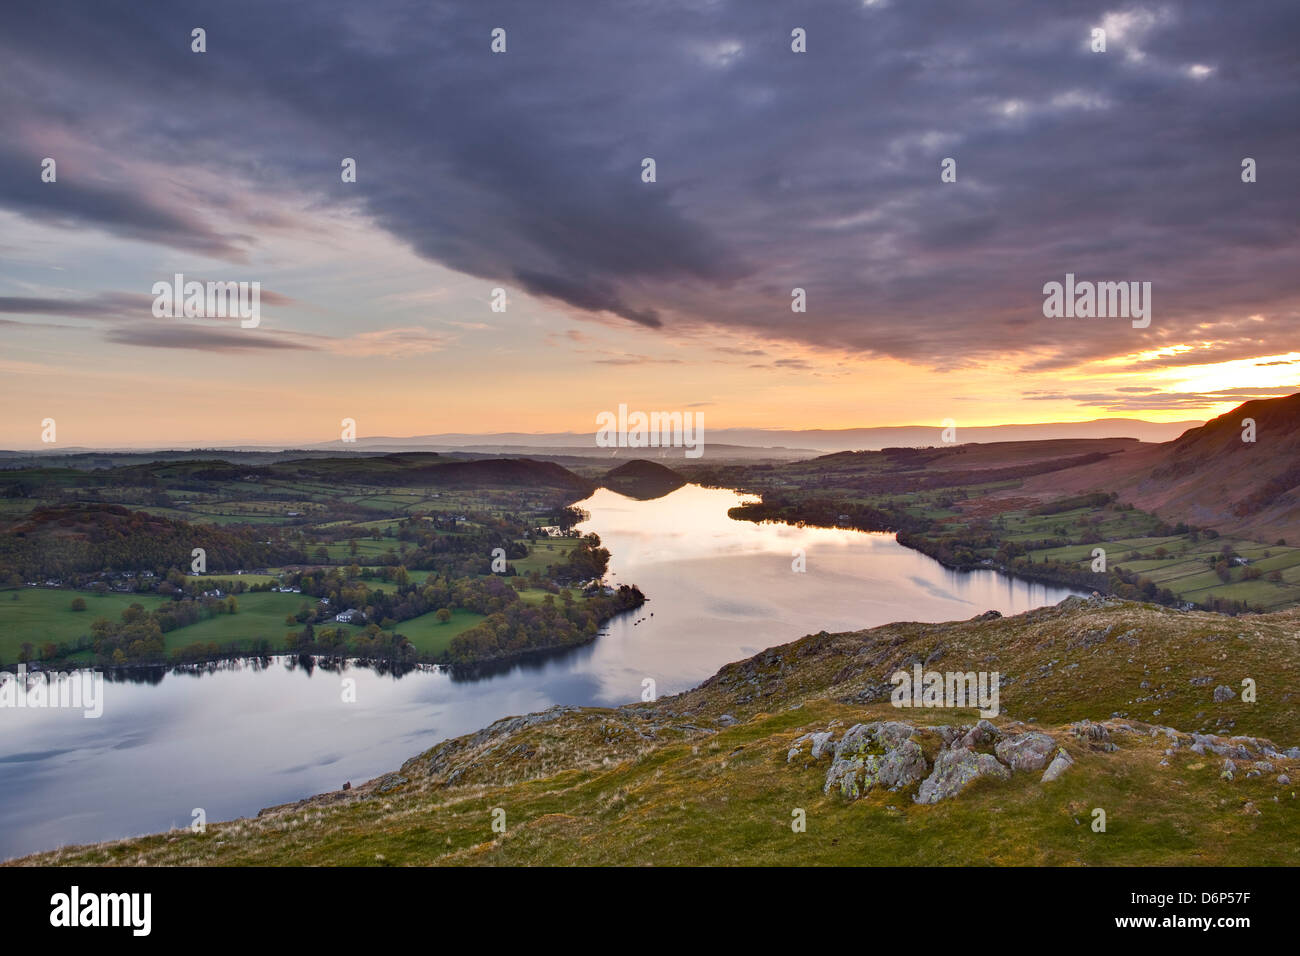 Ullswater dans le Parc National du Lake District, Cumbria, Angleterre, Royaume-Uni, Europe Photo Stock